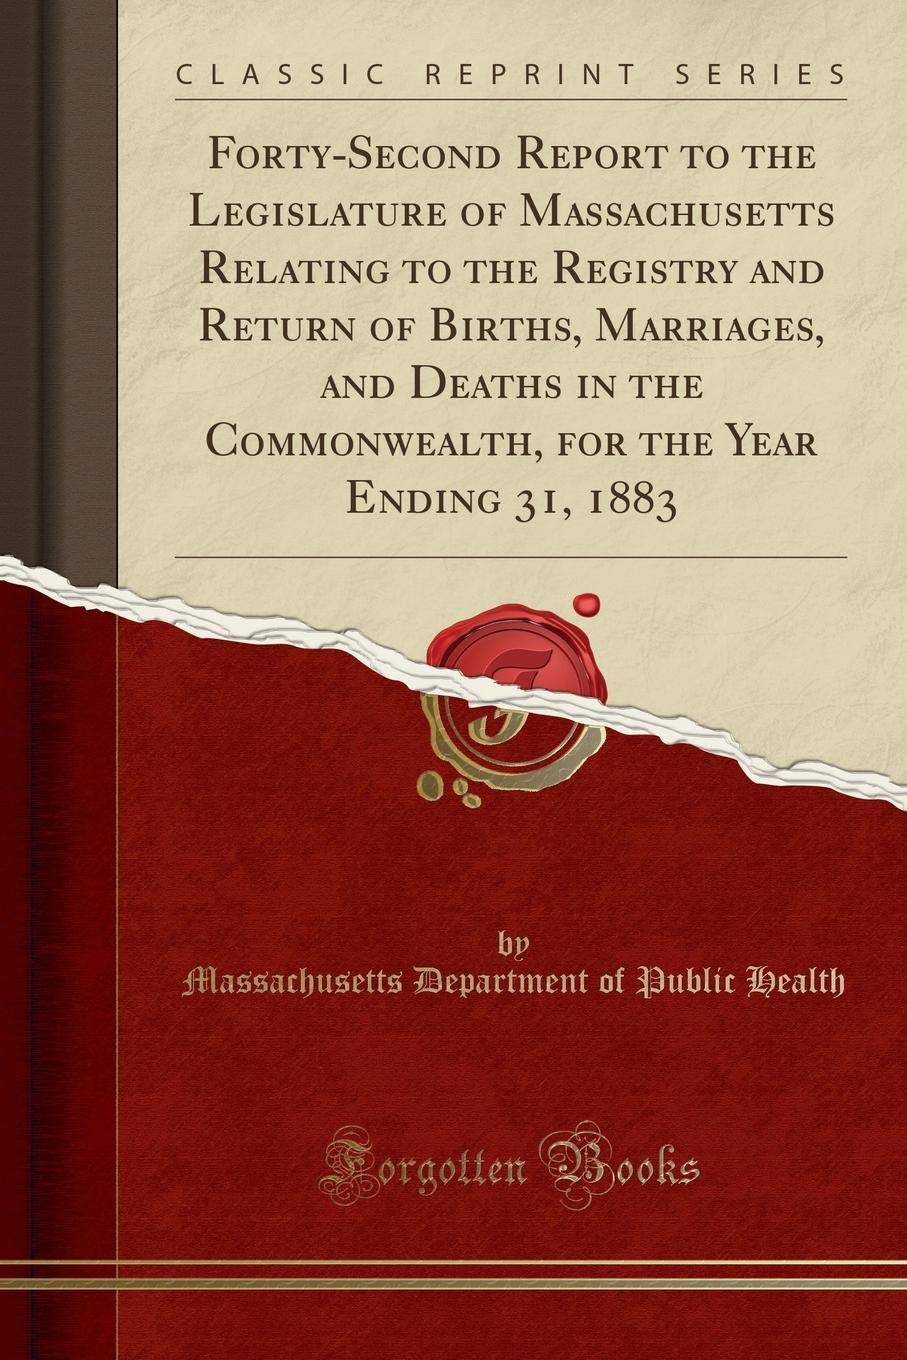 Forty-Second Report to the Legislature of Massachusetts Relating to the Registry and Return of Births, Marriages, and Deaths in the Commonwealth, for the Year Ending 31, 1883 (Classic Reprint) pdf